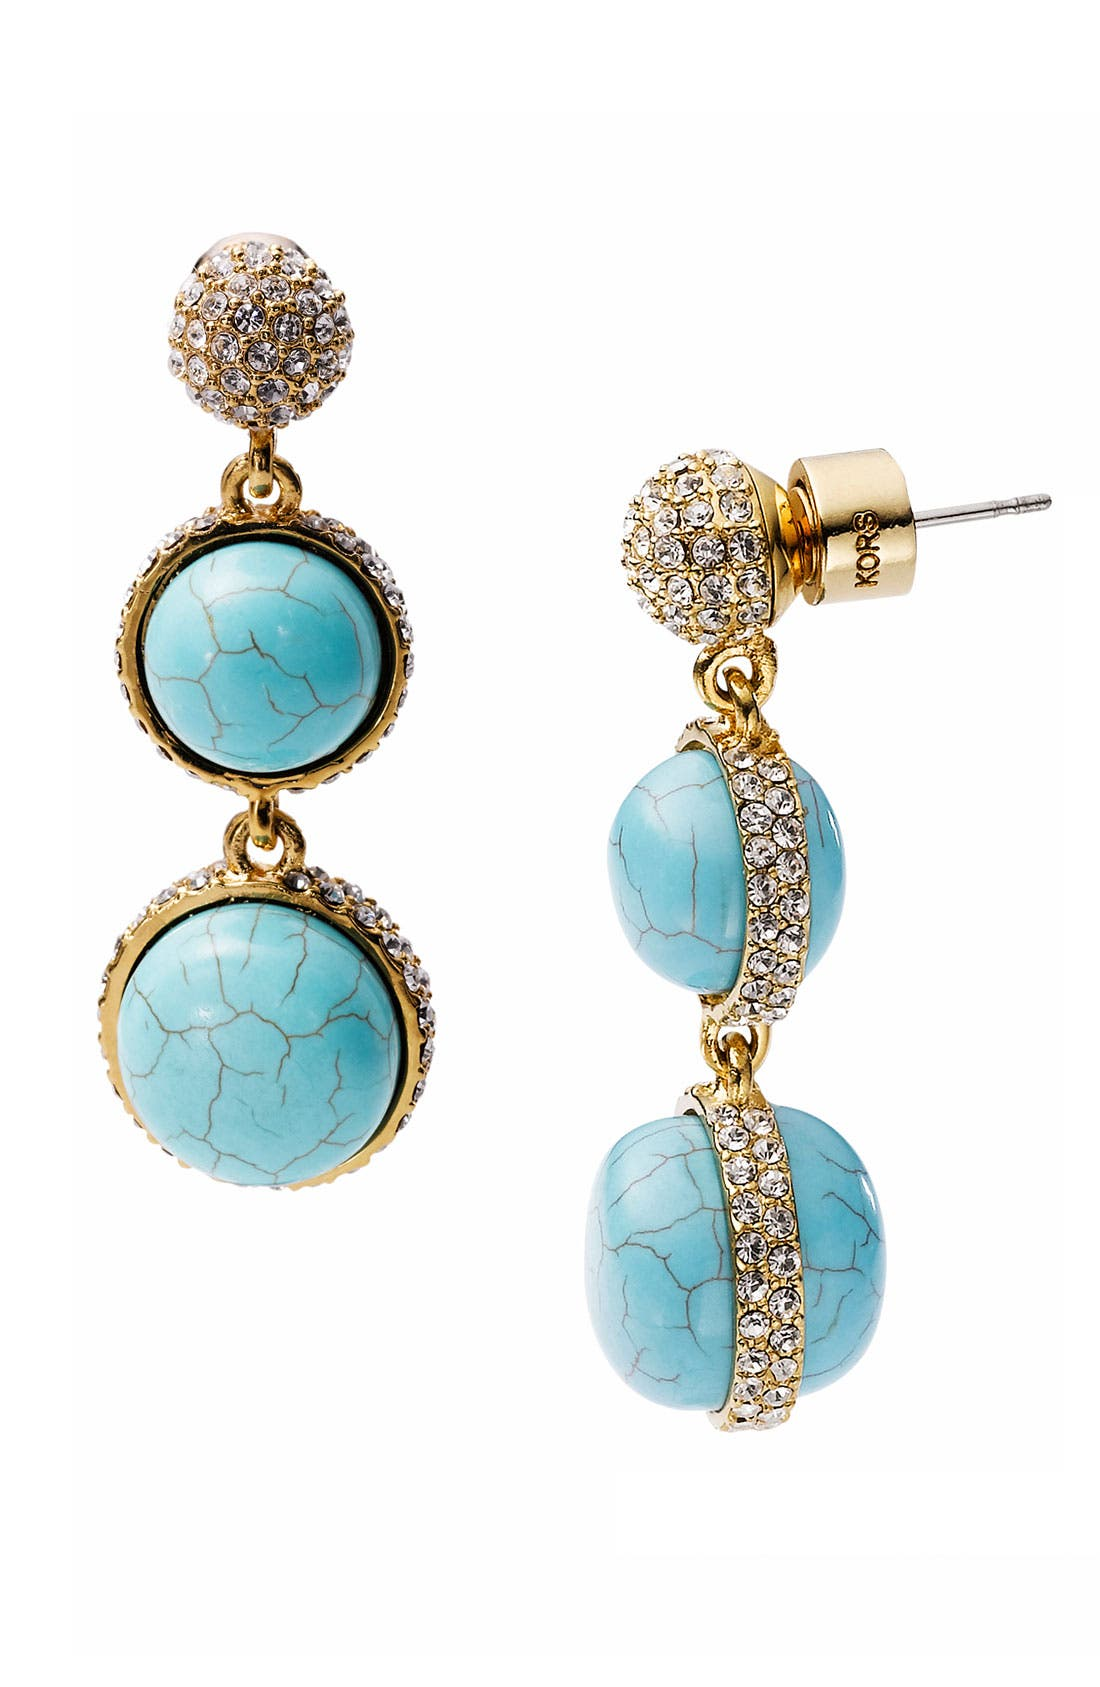 Alternate Image 1 Selected - Michael Kors 'Sleek Exotics' Double Drop Slice Earrings